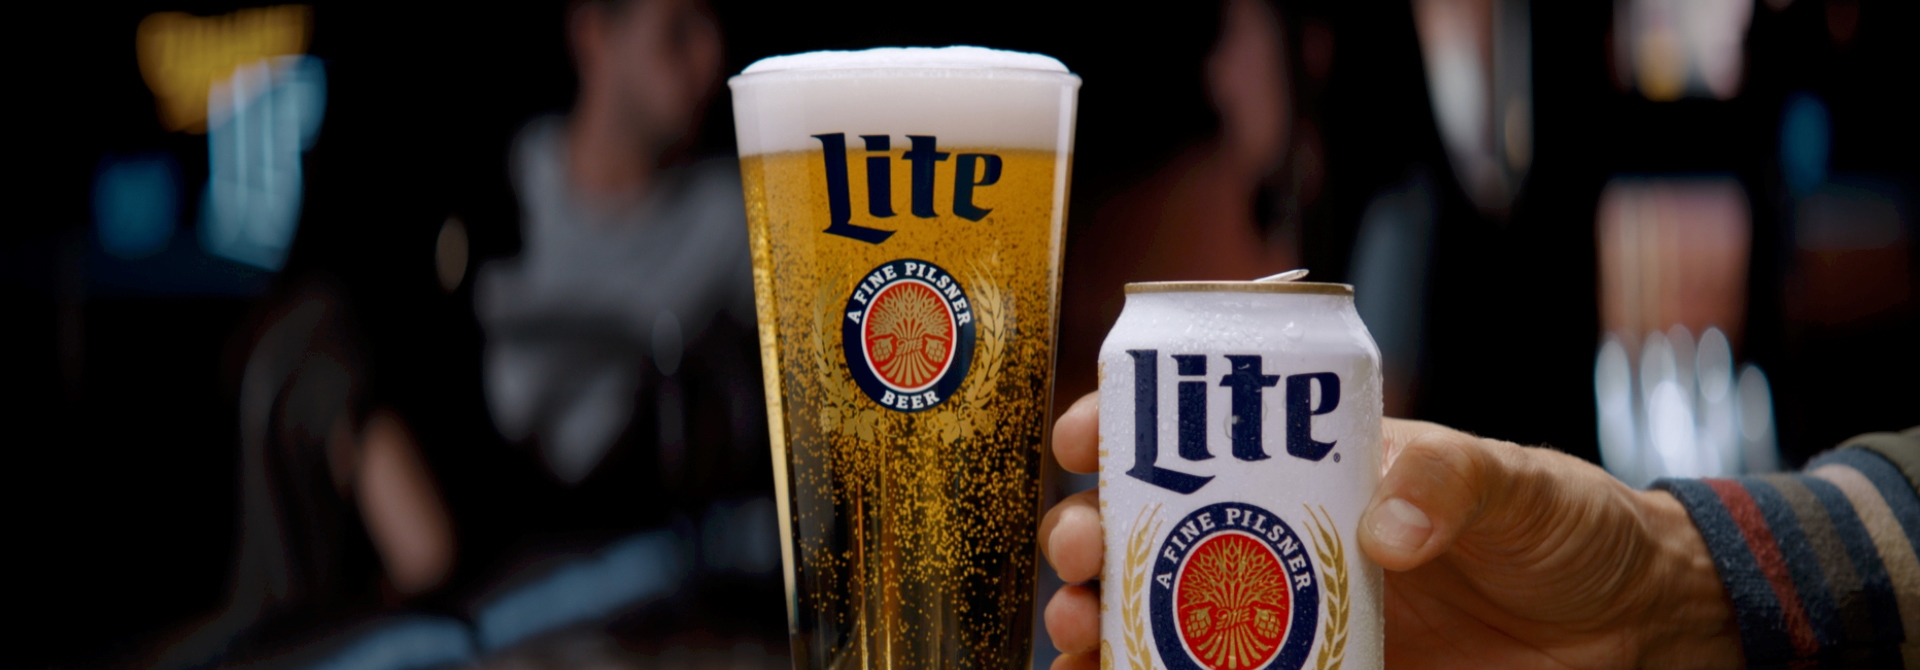 Miller Lite Can and Glass